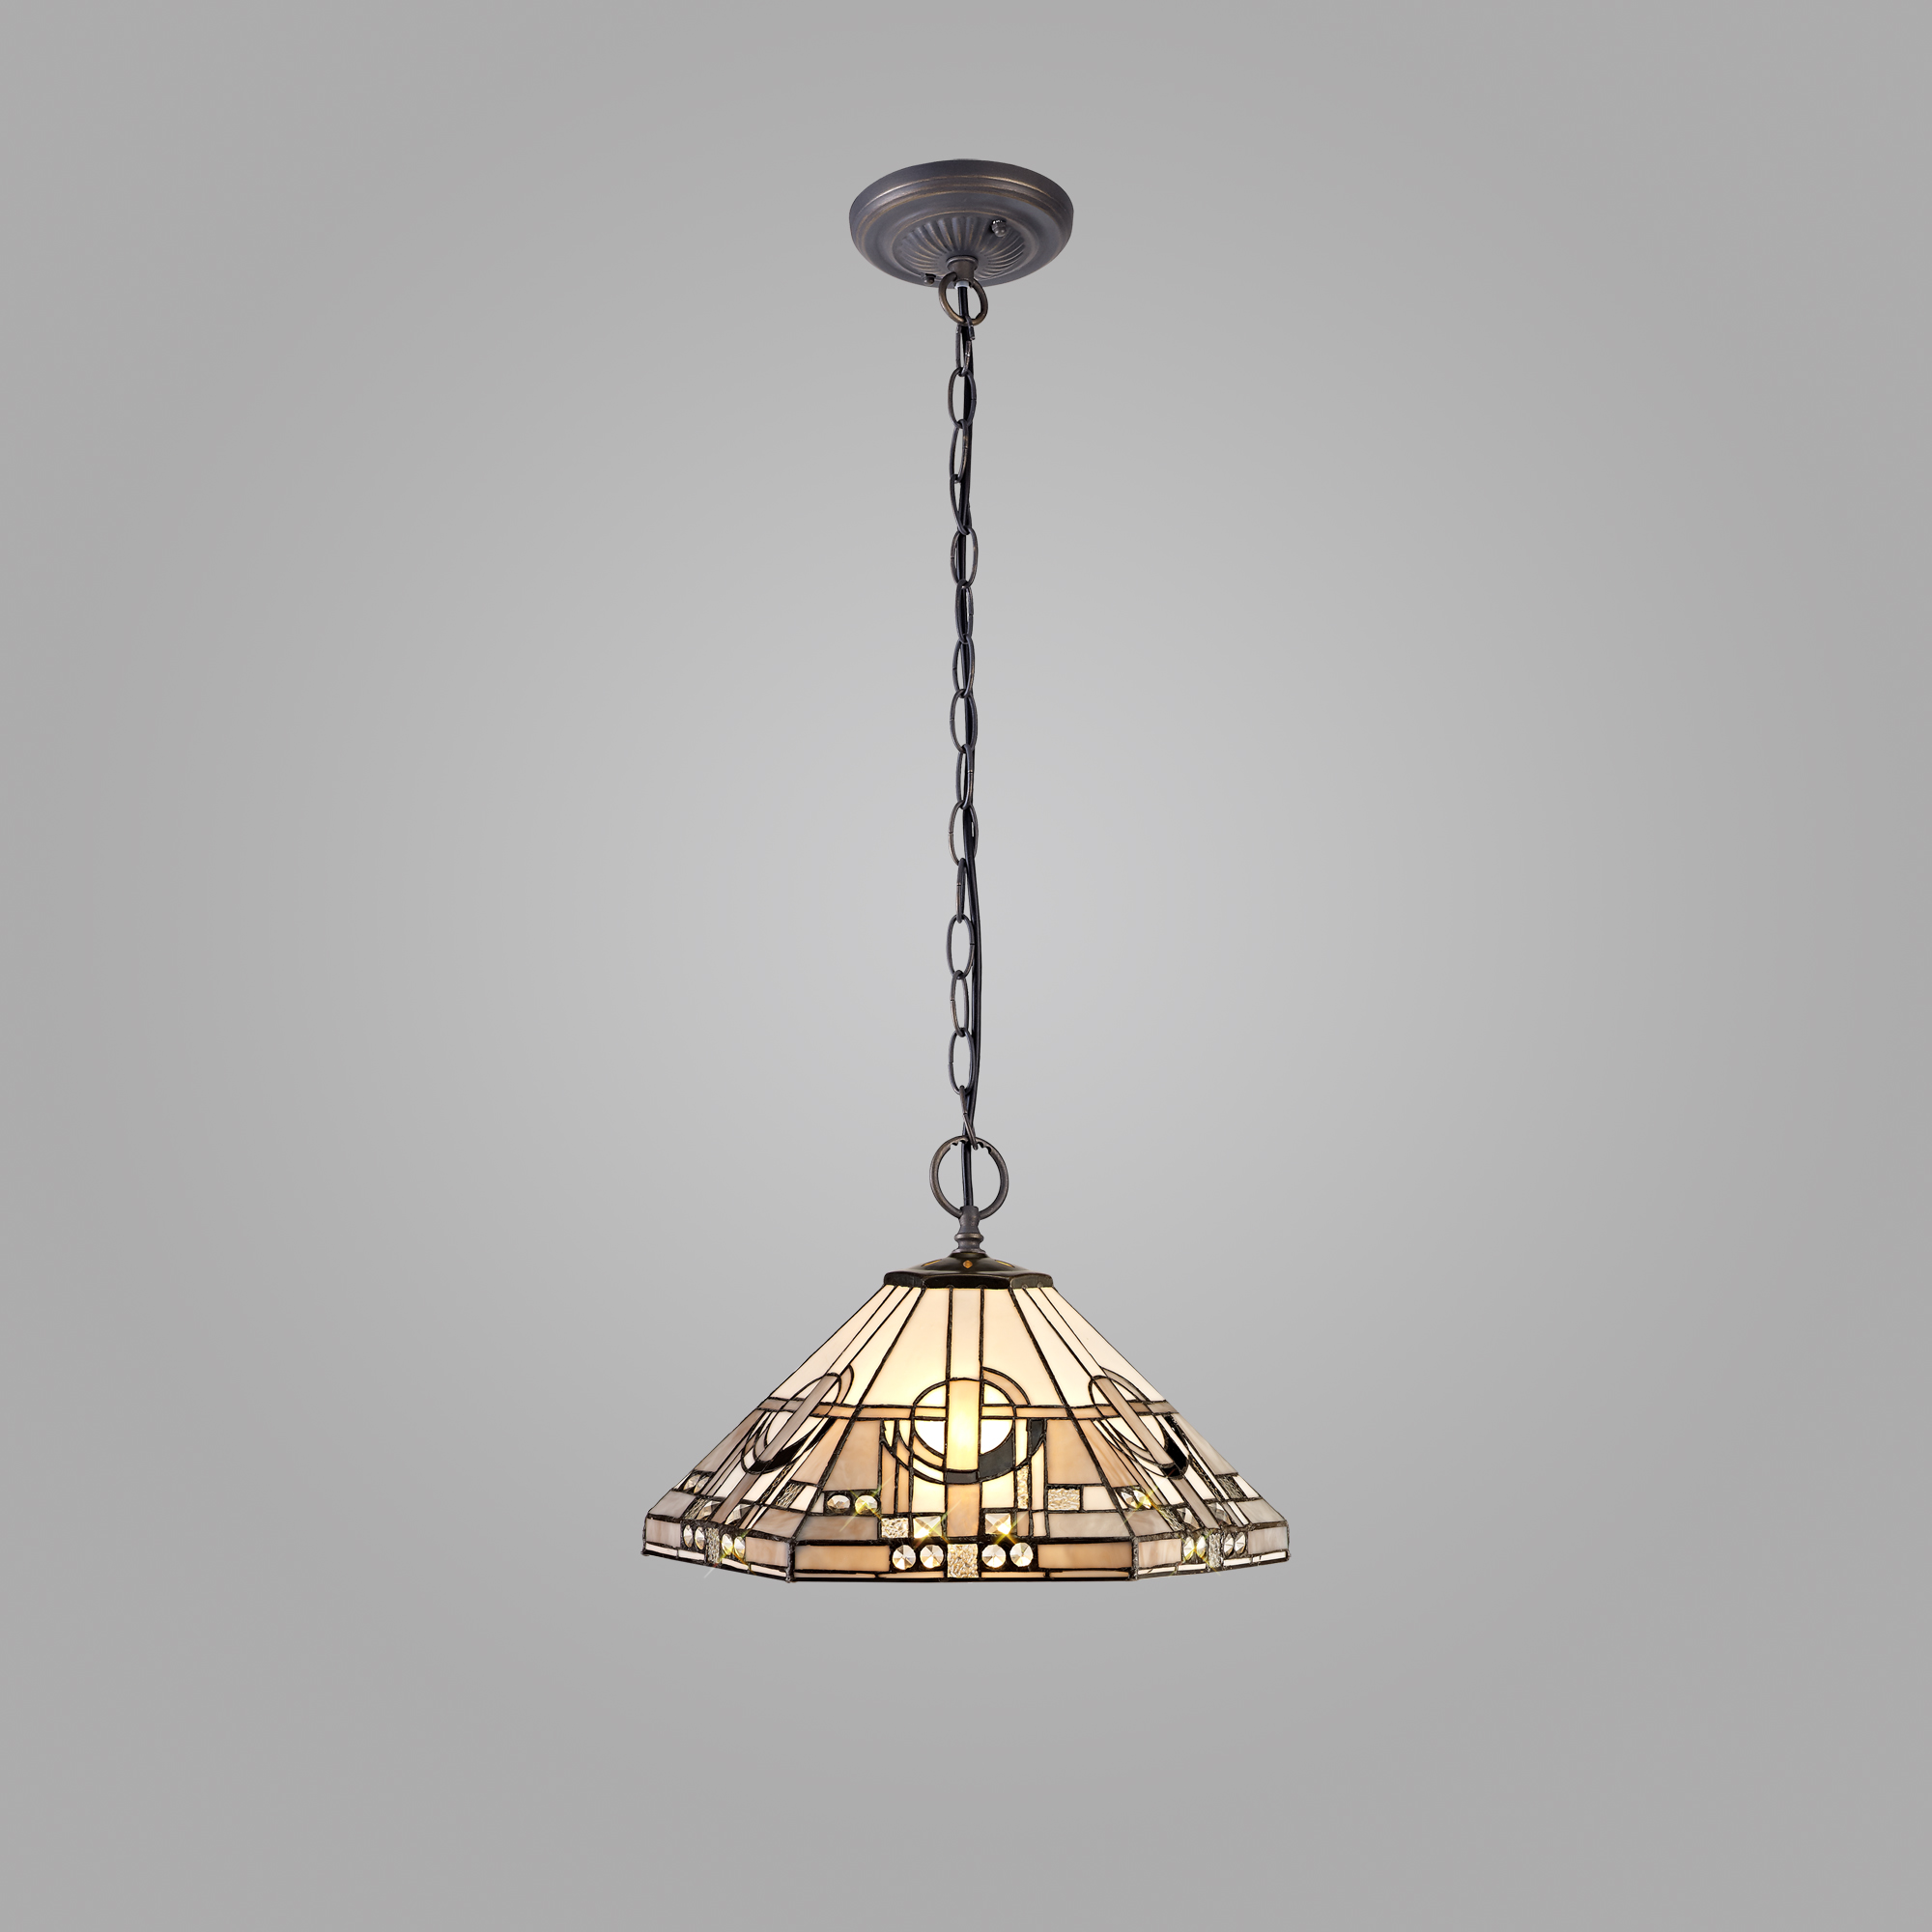 2 Light Downlighter Pendant E27 With 40cm Tiffany Shade, White/Grey/Black/Clear Crystal/Aged Antique Brass